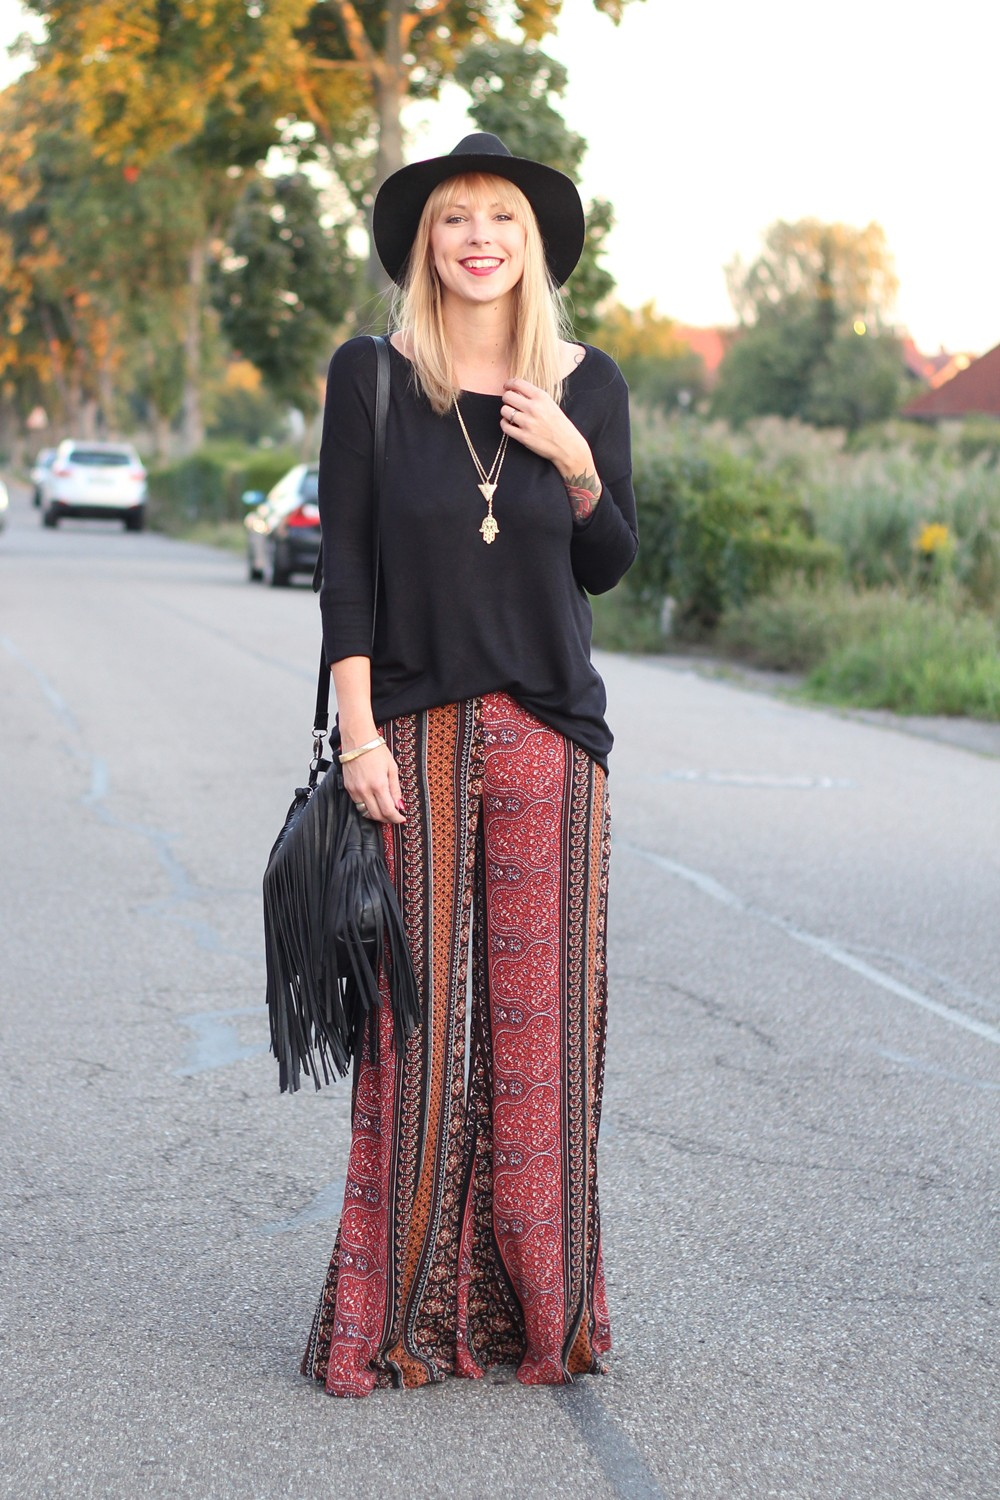 Fashinblogger Karlsruhe Mannheim Outfit Palazzohosen Pull and Bear Sweater Hut Fransentasche 6